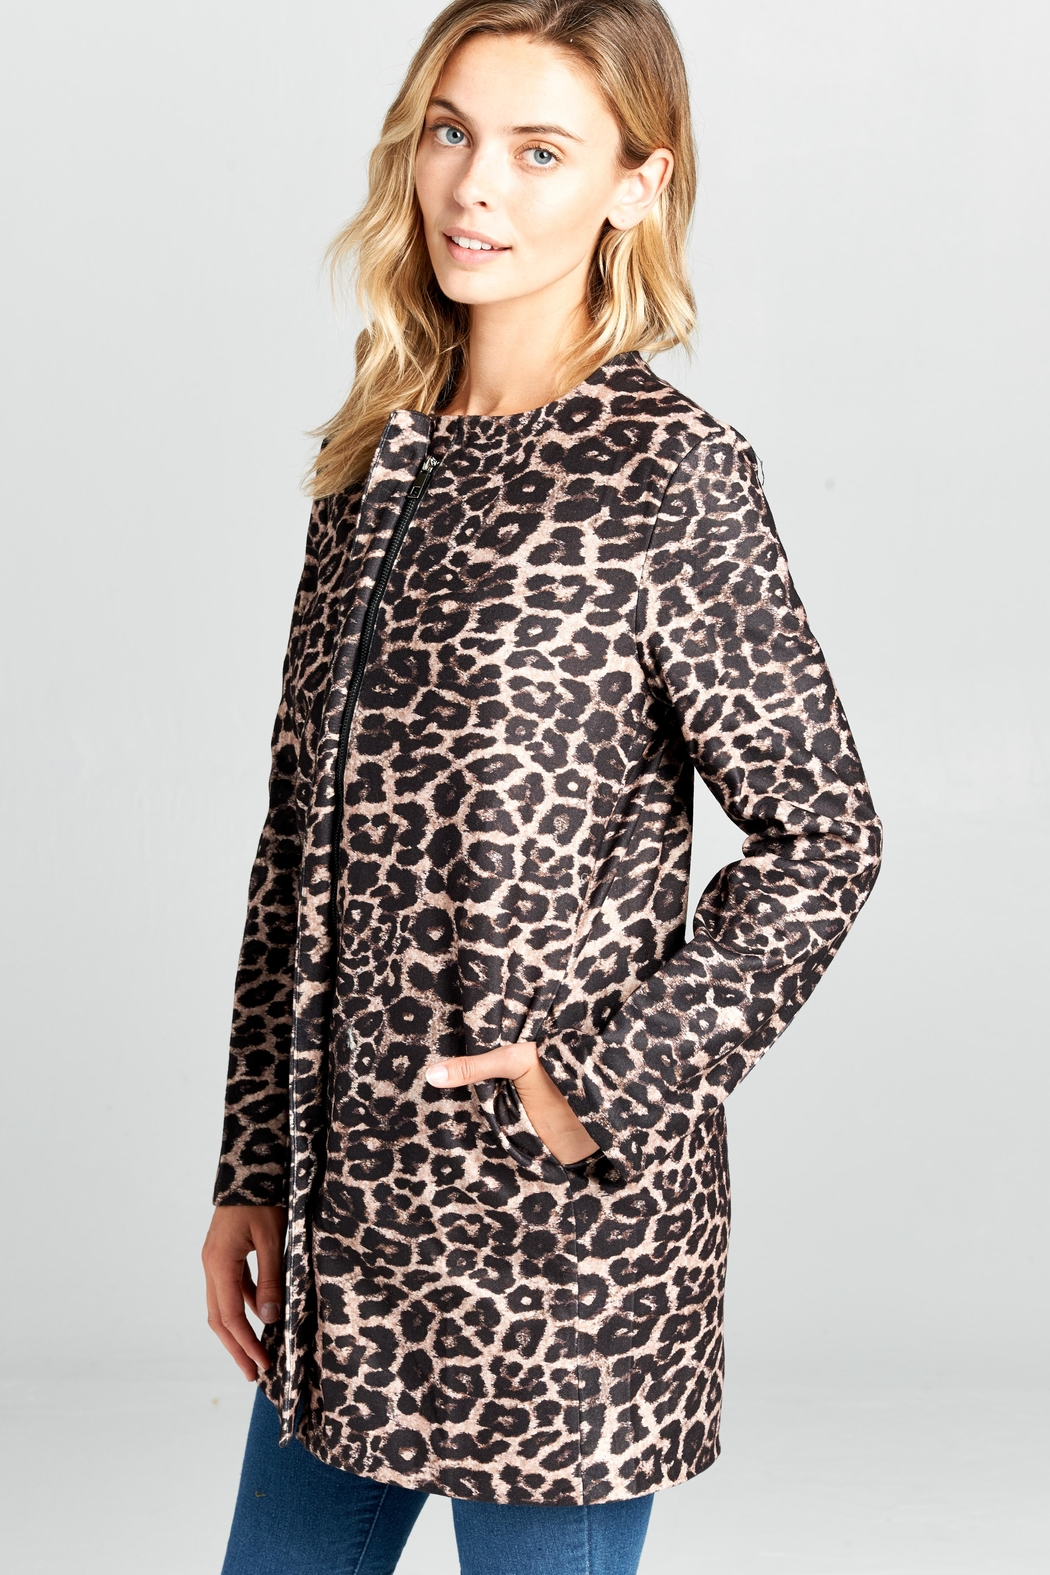 16368a87c1bc Racine Leopard Print Coat from California by Racine Love — Shoptiques